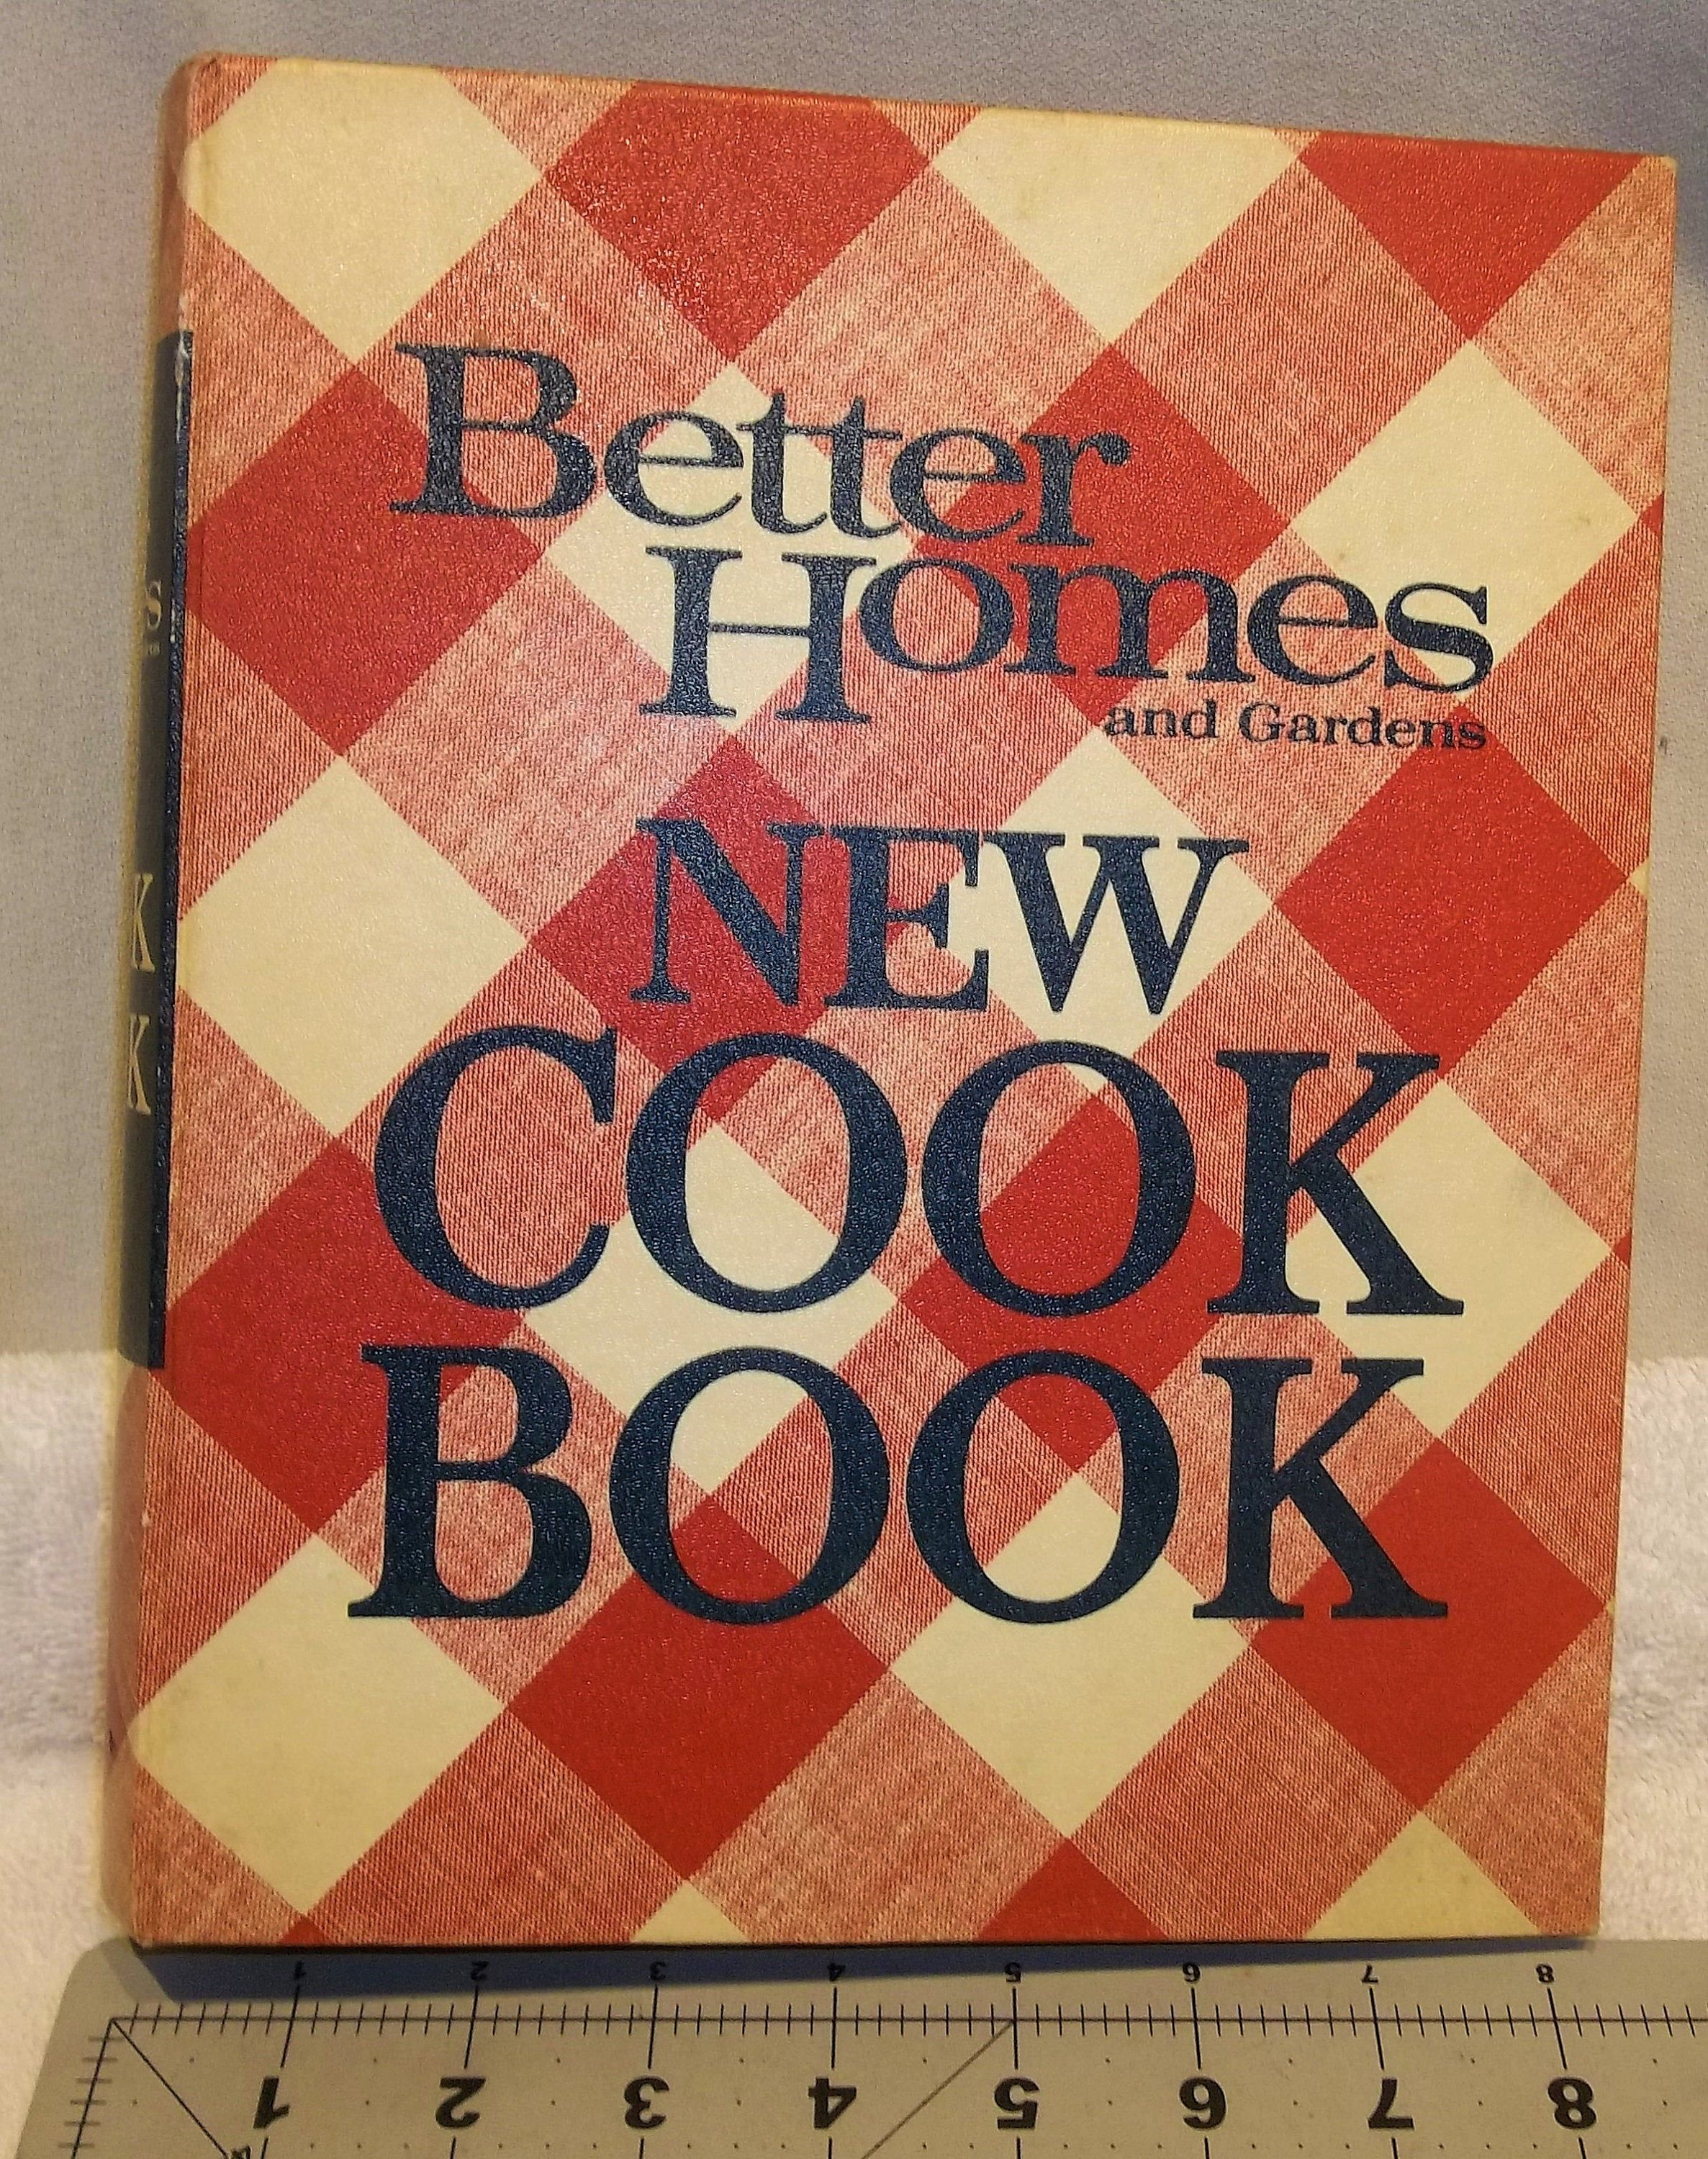 20ebdac9a8a58275597be4231d9d4581 - Better Homes And Gardens New Baking Book